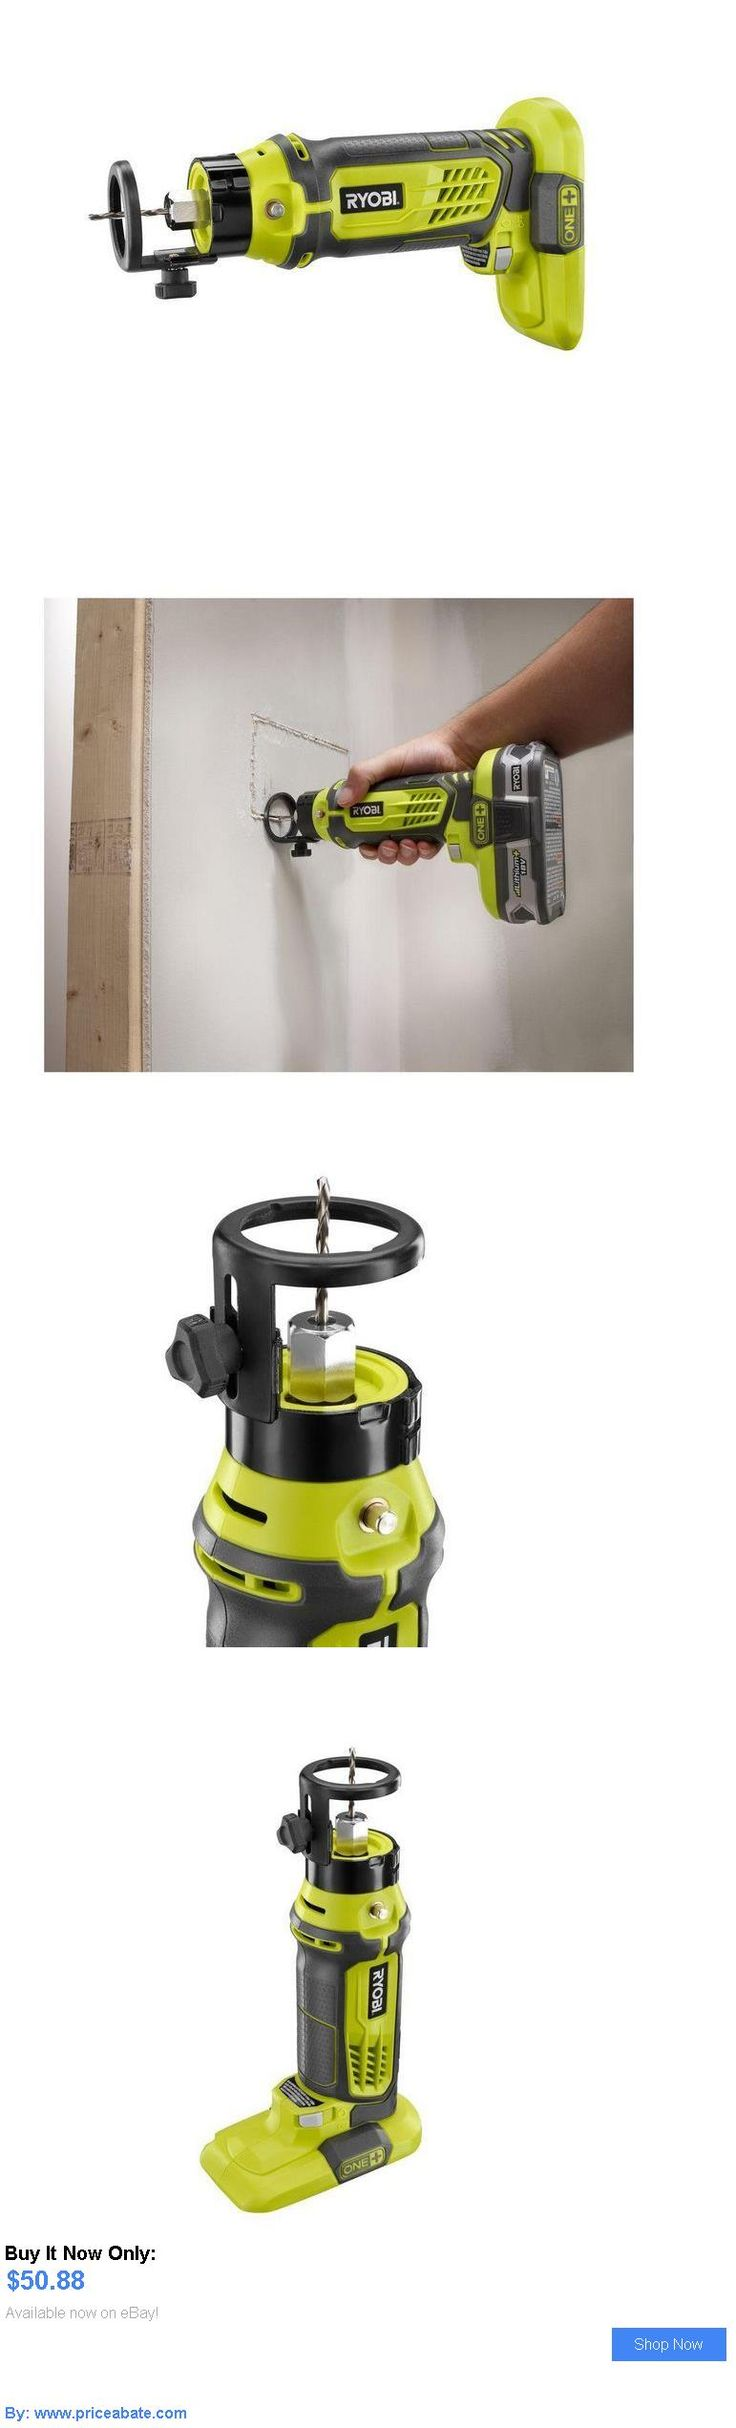 tools: Ryobi One  18 Volt Li Lithium Ion Speed Saw Rotary Cutter Dremel Tool BUY IT NOW ONLY: $50.88 #priceabatetools OR #priceabate